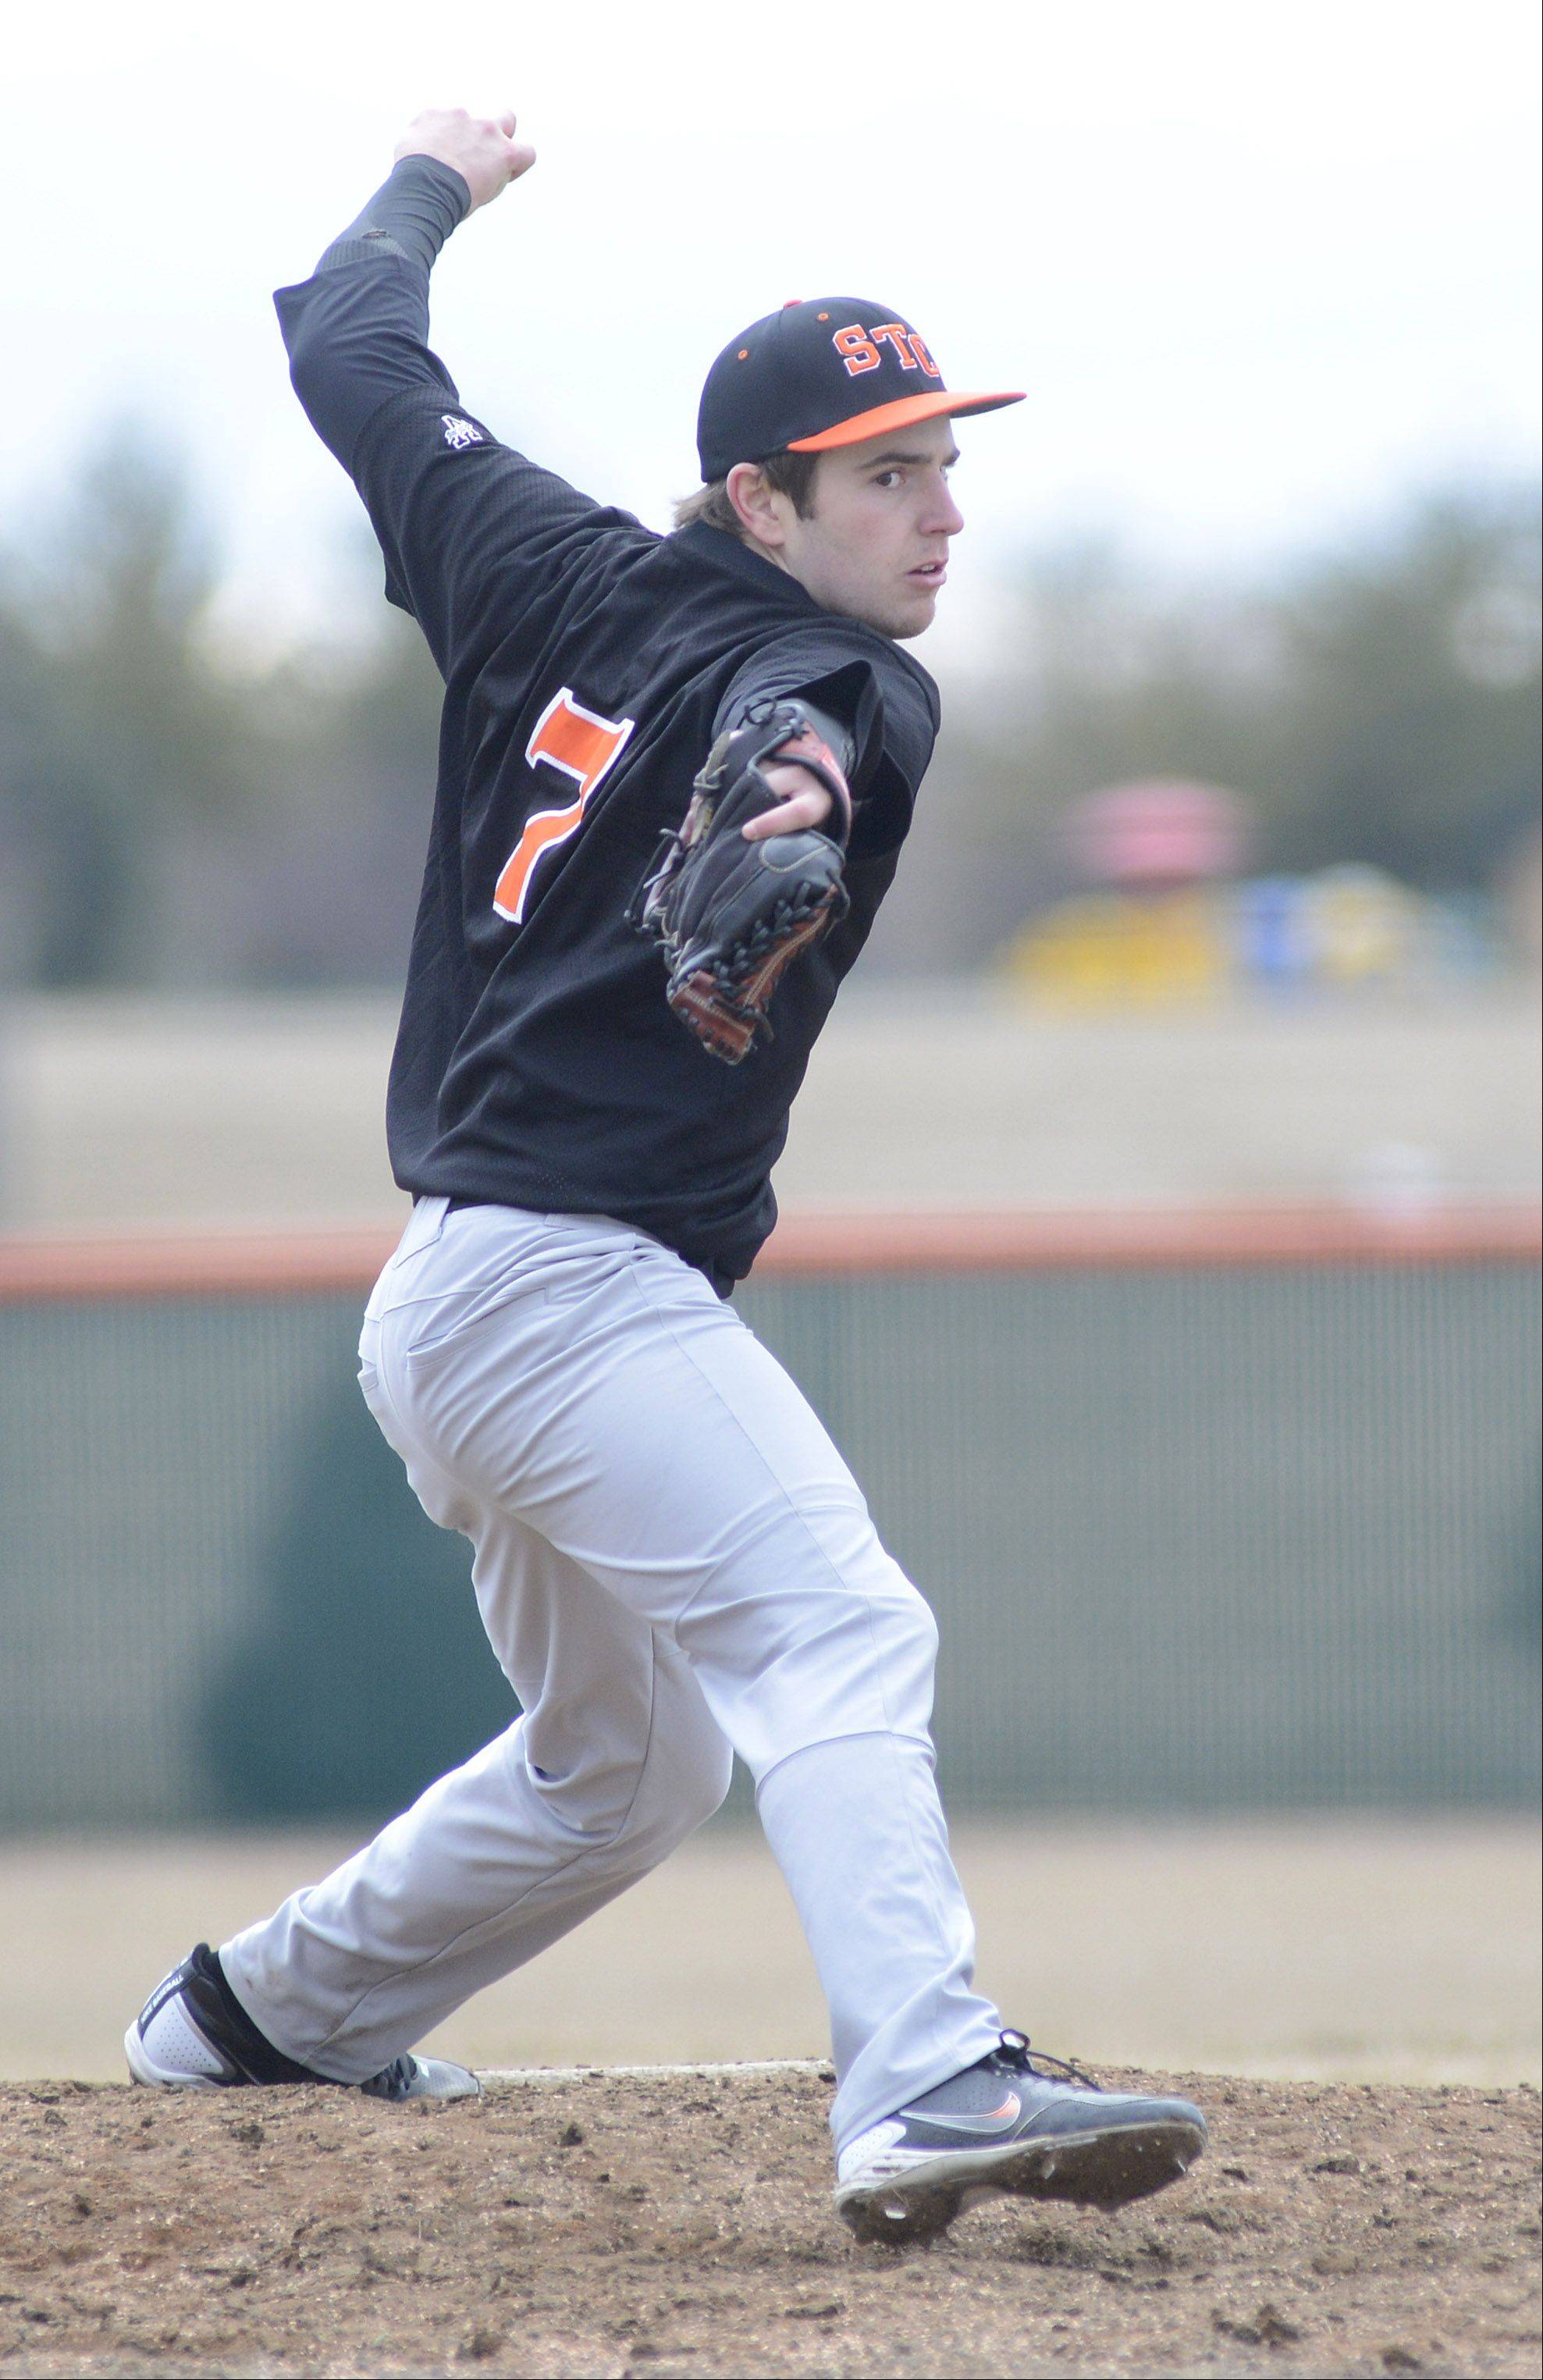 St. Charles East's Nick Huskisson pitches in game vs. West Aurora on Tuesday, March 26.